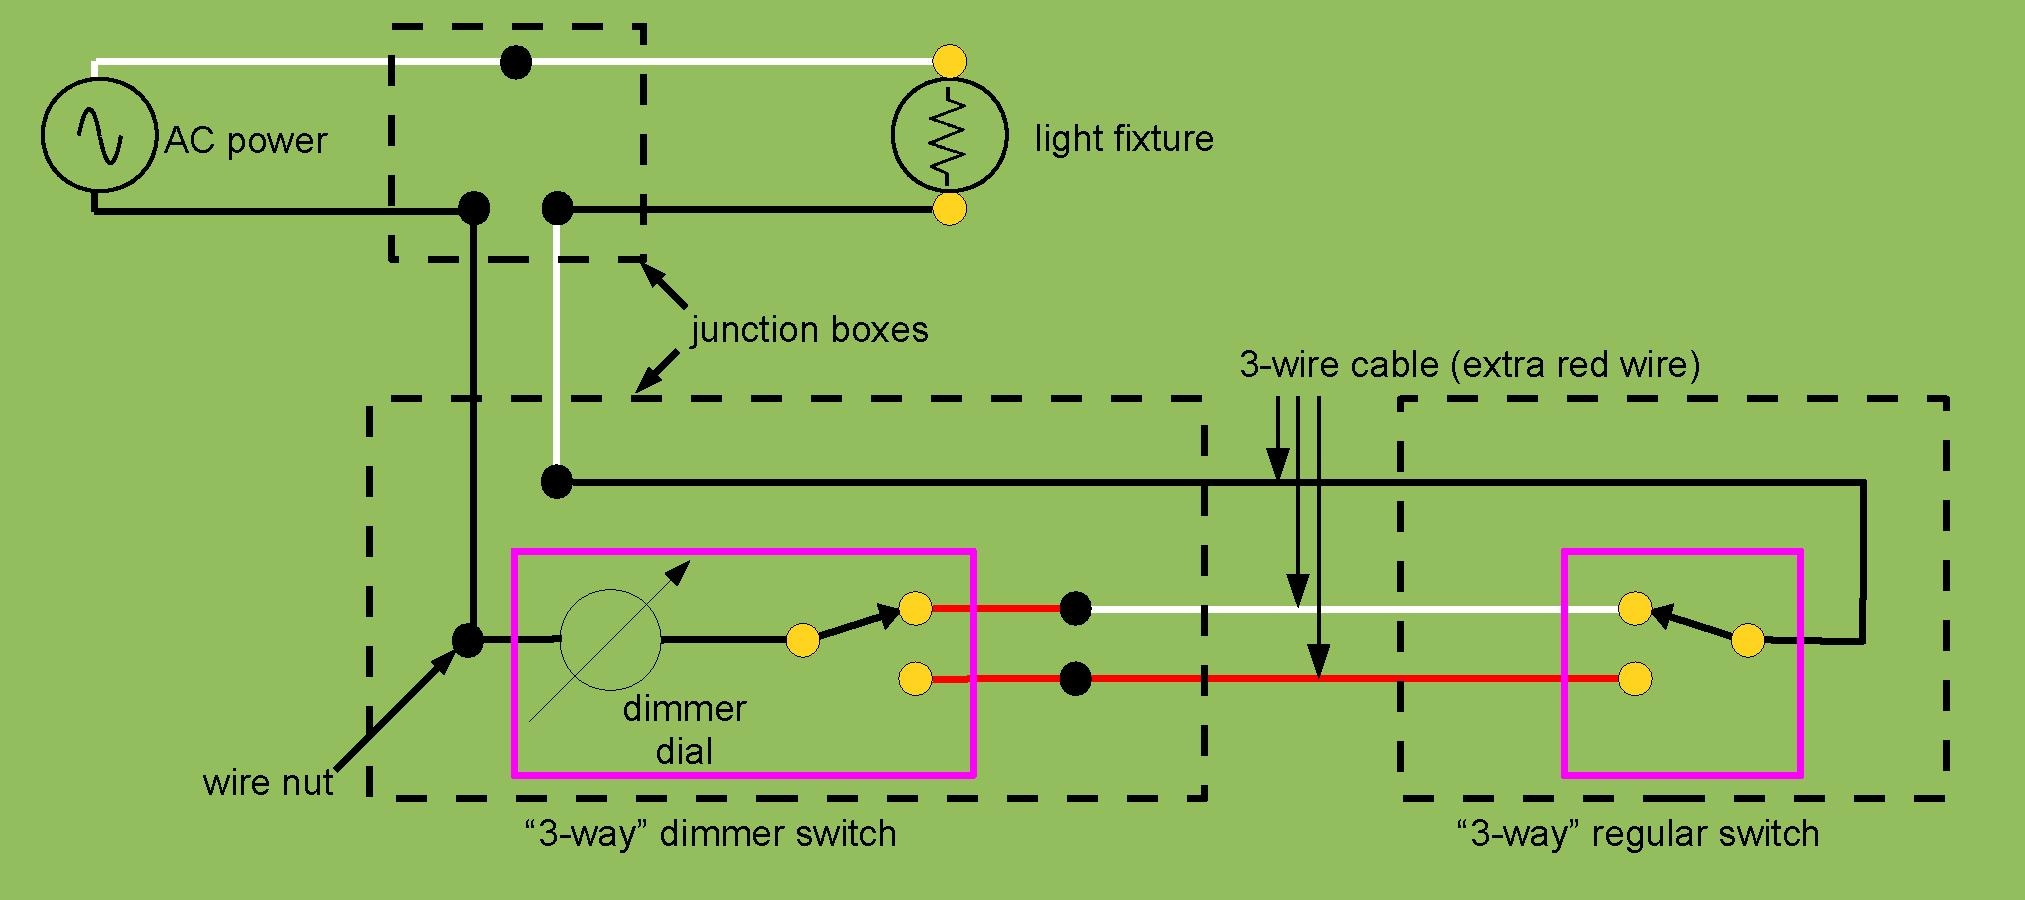 3 way wiring diagram with dimmer switch ae86 file pdf wikimedia commons